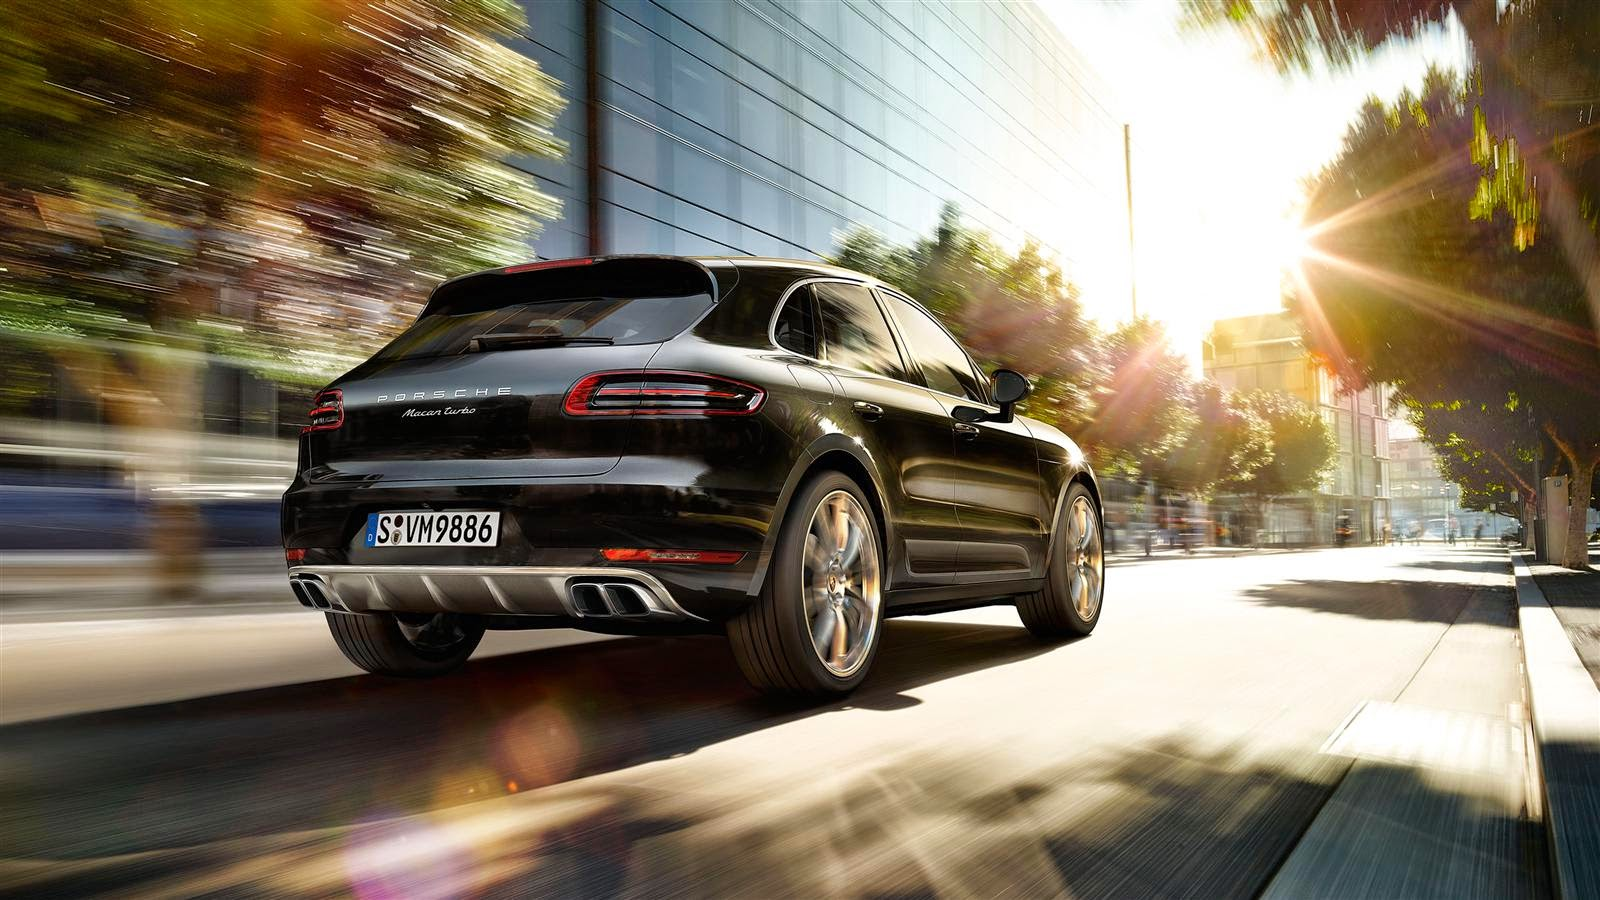 Porsche Macan Turbo Back View Image